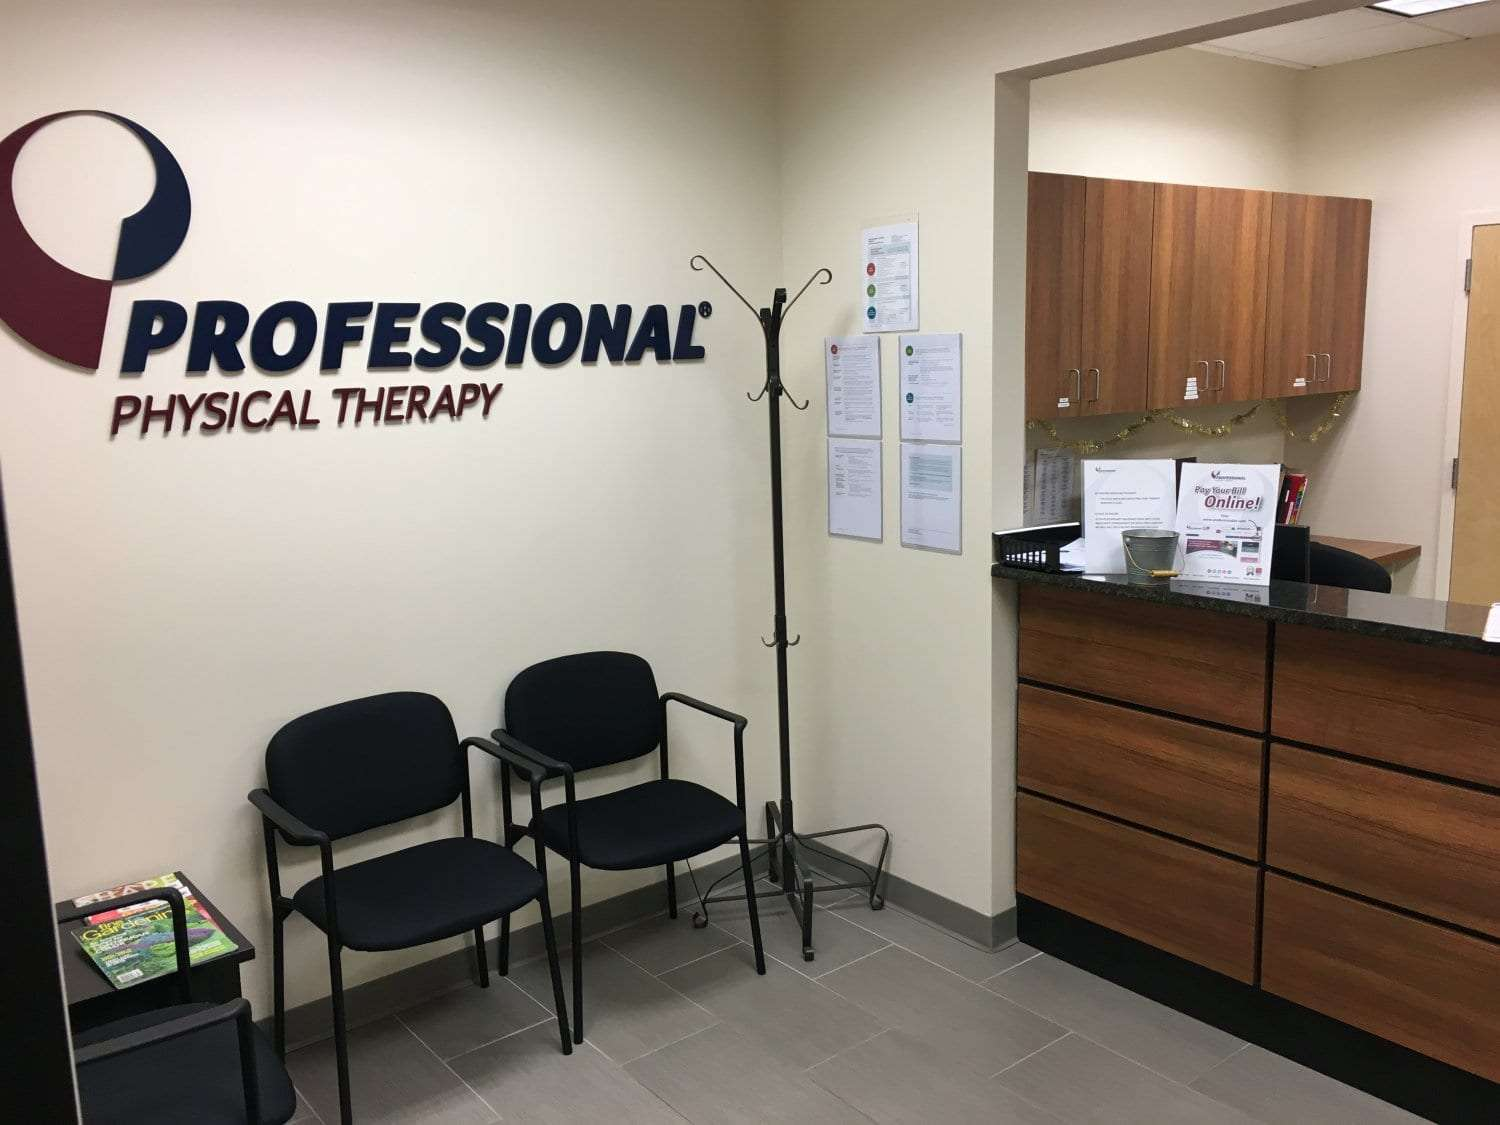 An image of two chairs in the waiting area in front of the check-in desk at our physical therapy clinic in Mahwah, New Jersey.